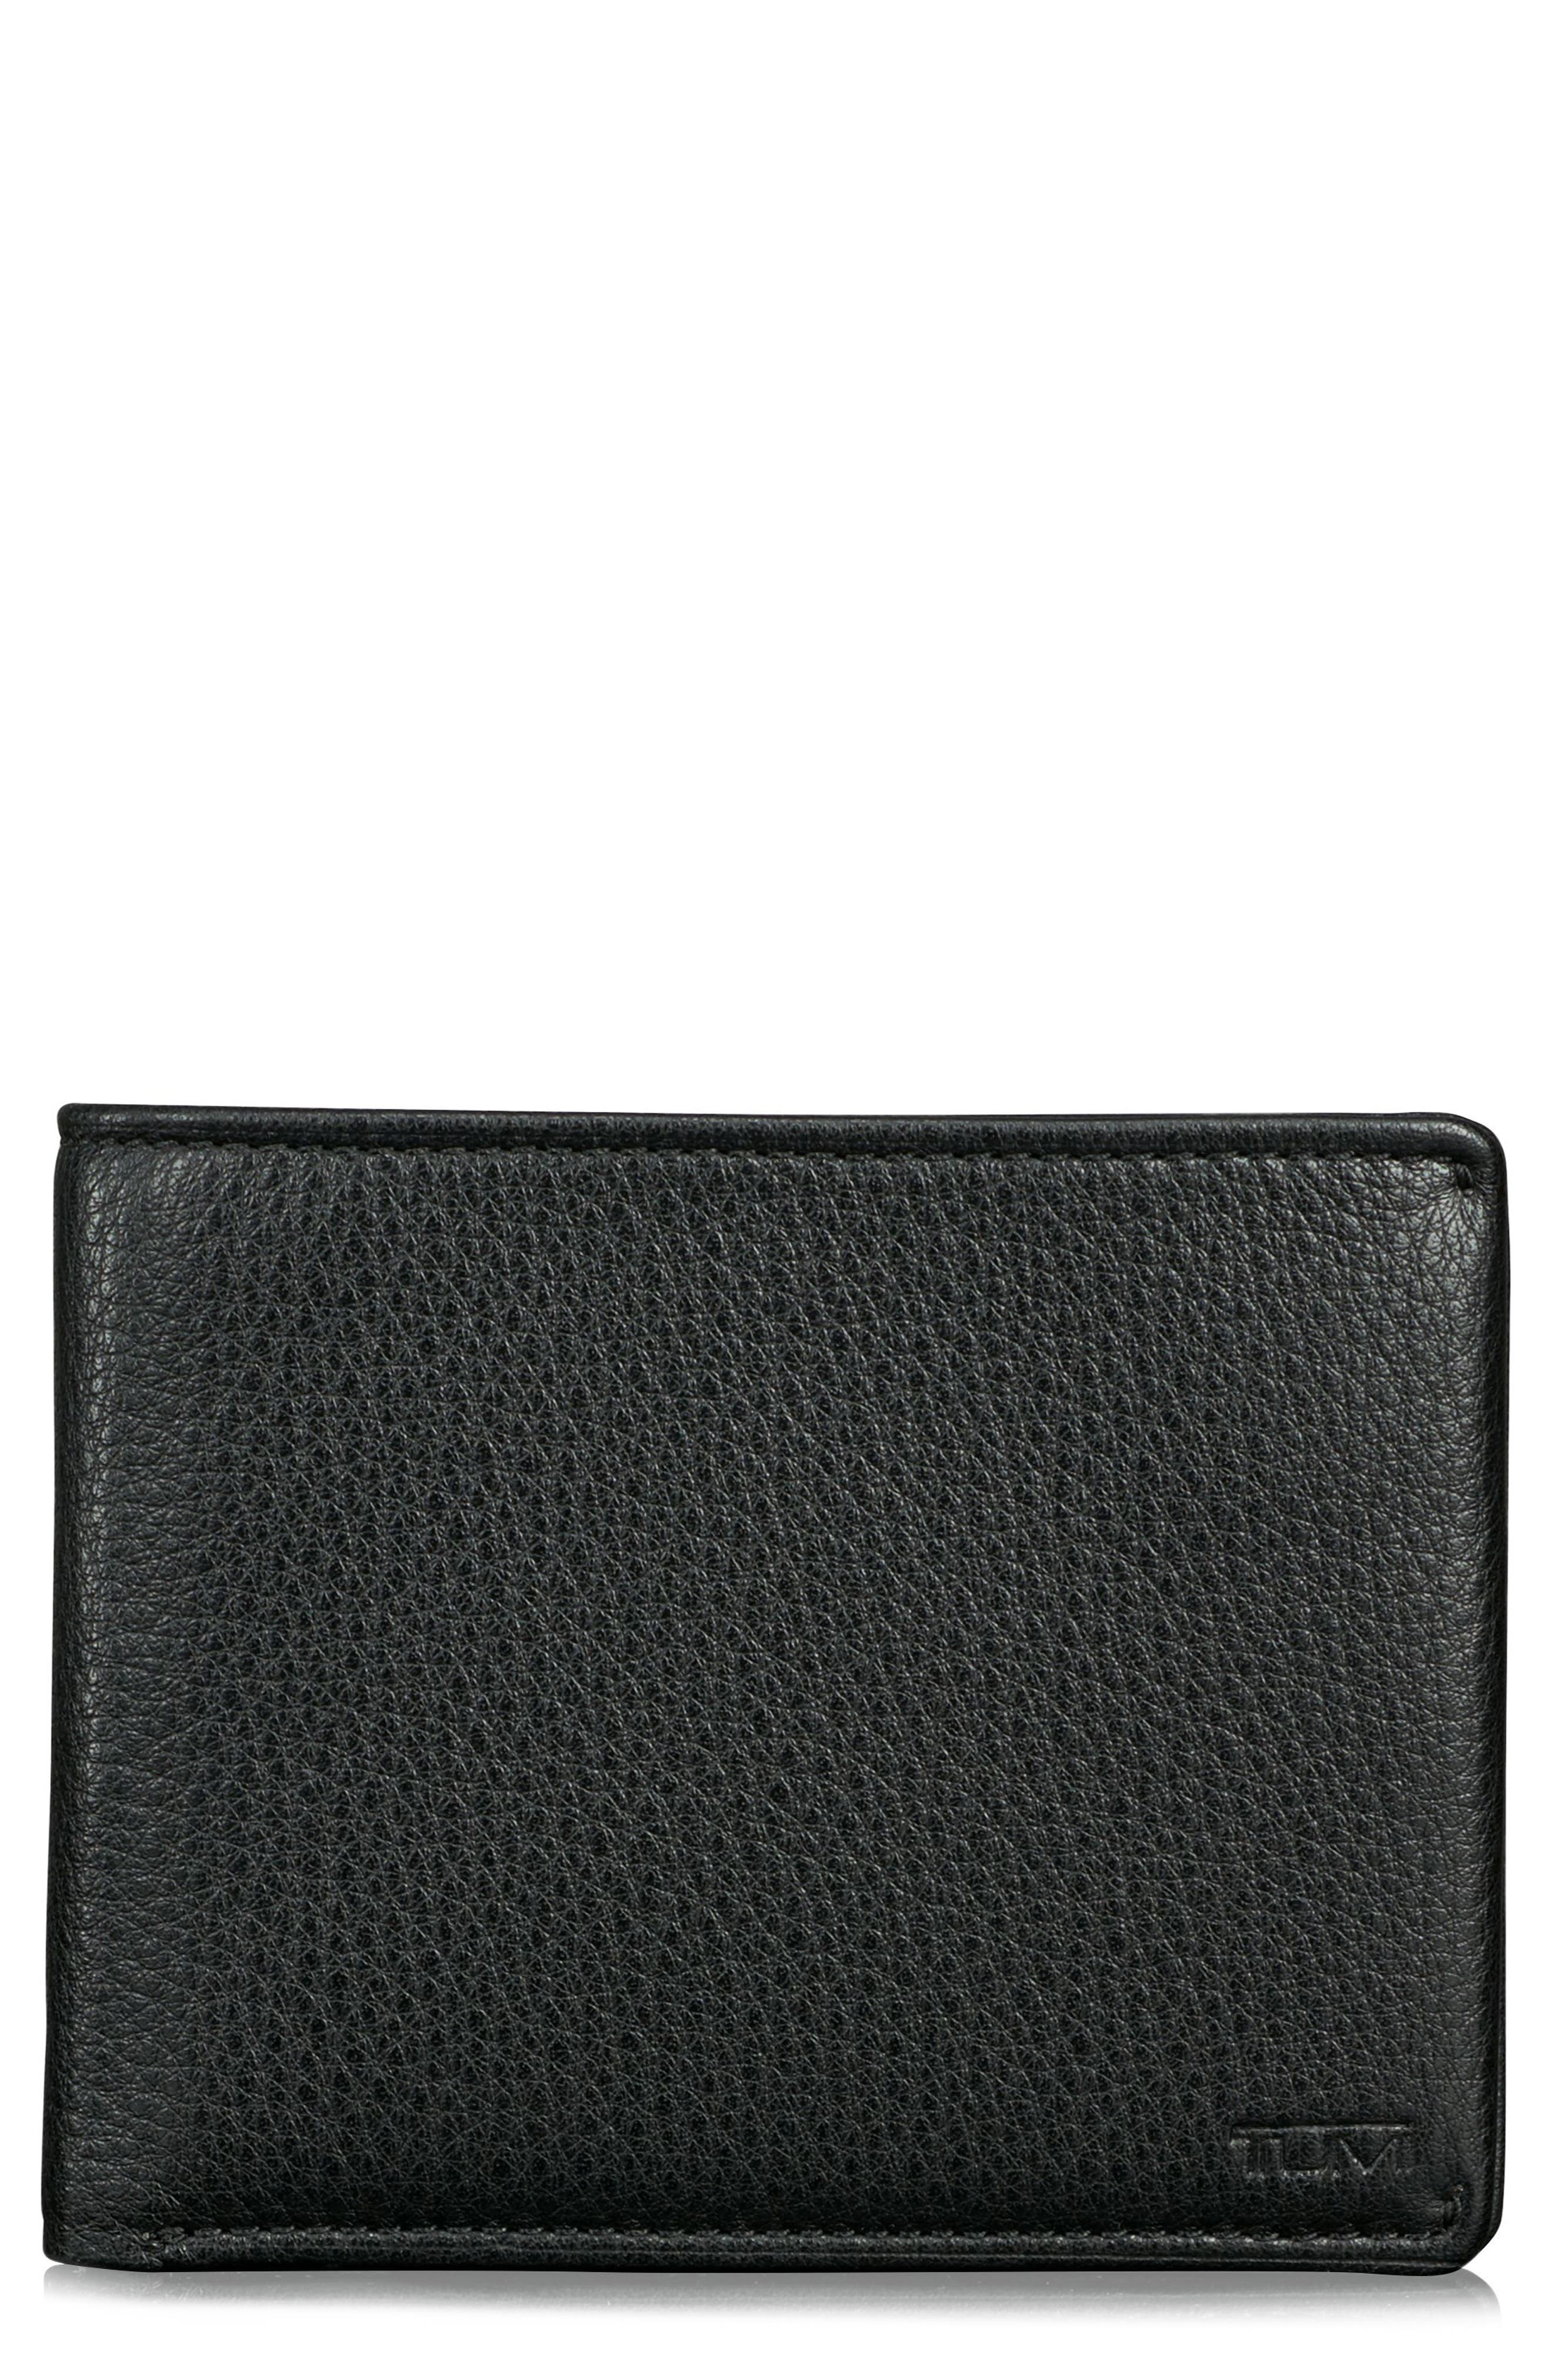 TUMI, Global Leather RFID Wallet, Main thumbnail 1, color, 011